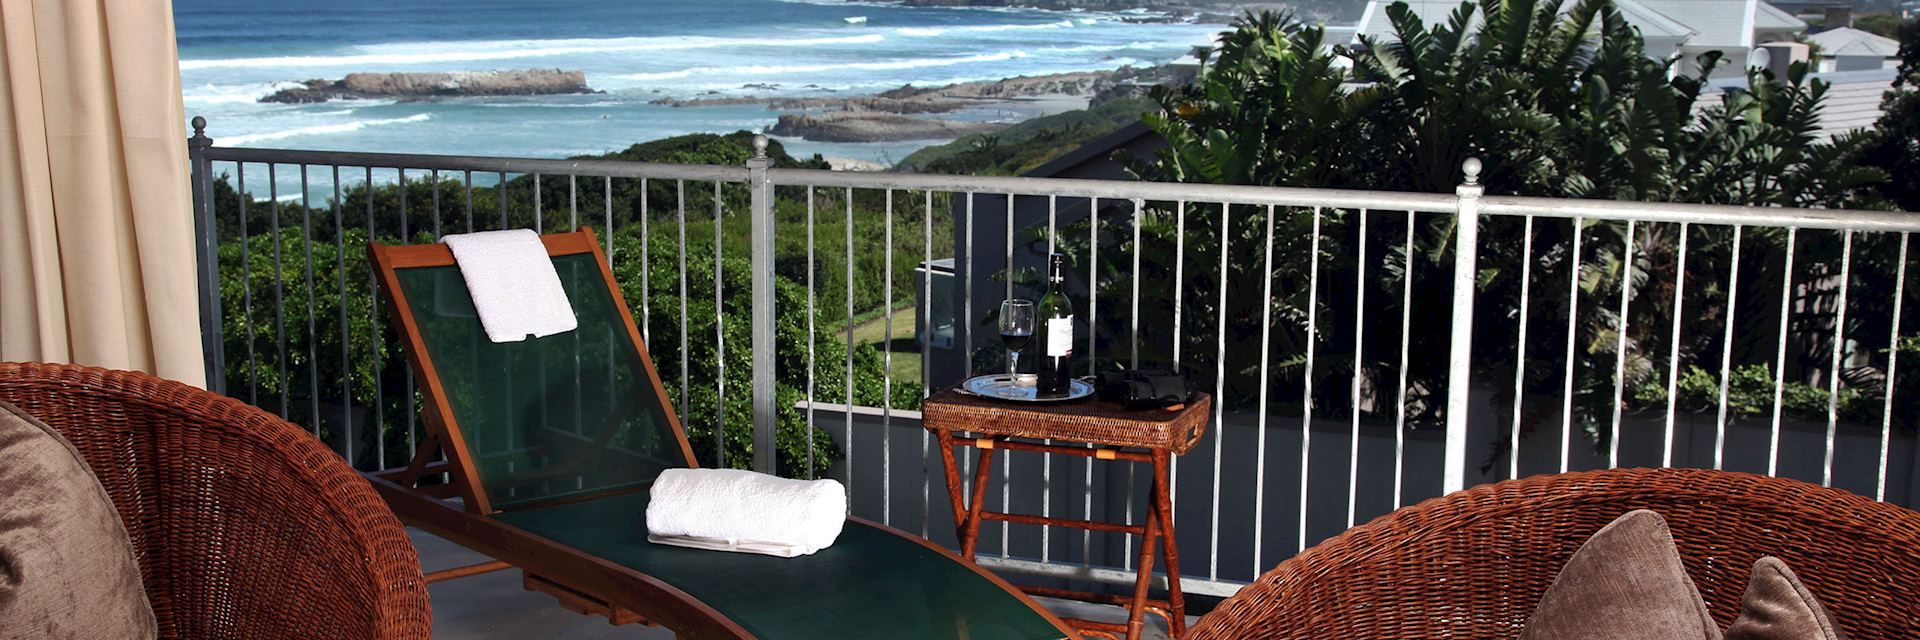 Hermanus Beach Hotel, Hermanus